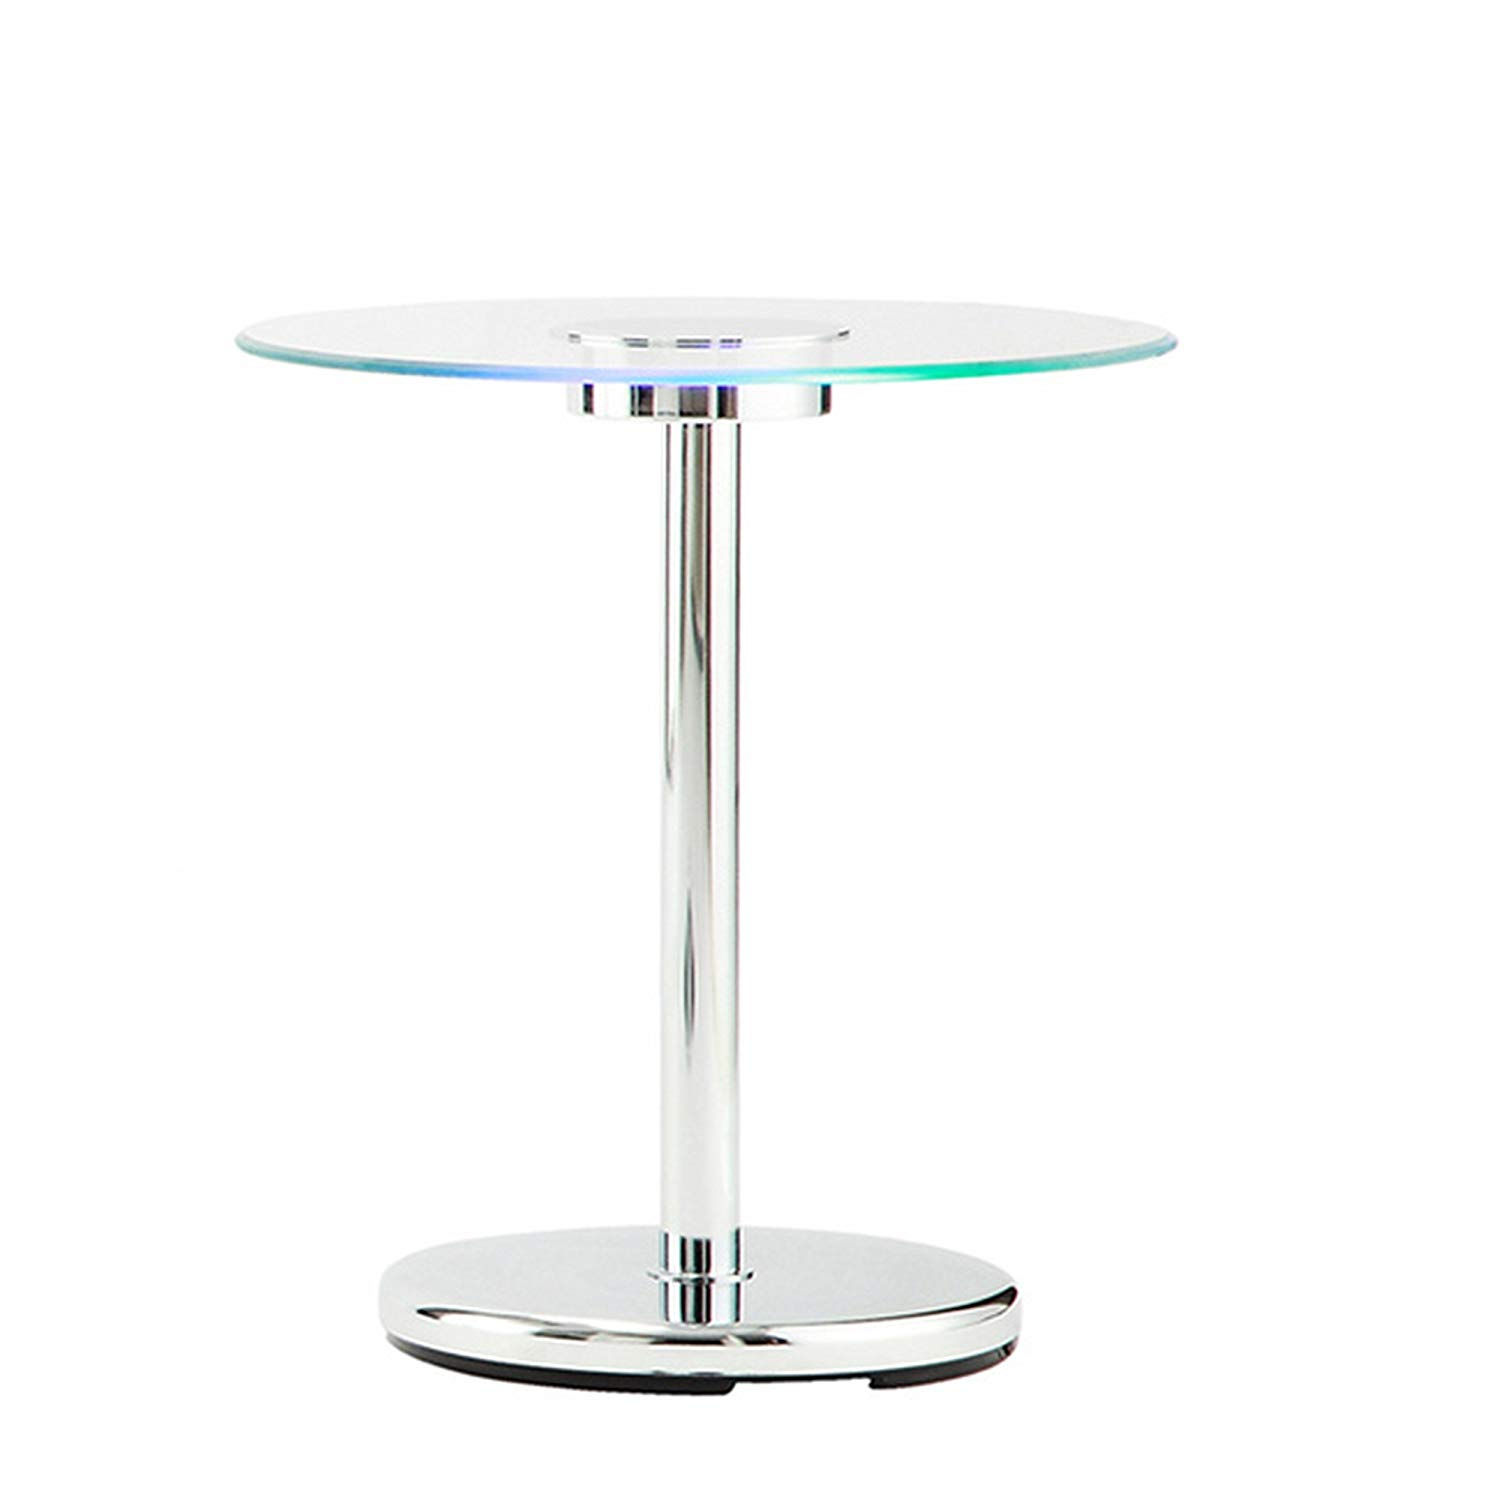 modhaus living modern style led accent tempered glass round table top shaped counter height end chrome metal frame room decor office desk dale tiffany amber mosaic lamp threshold